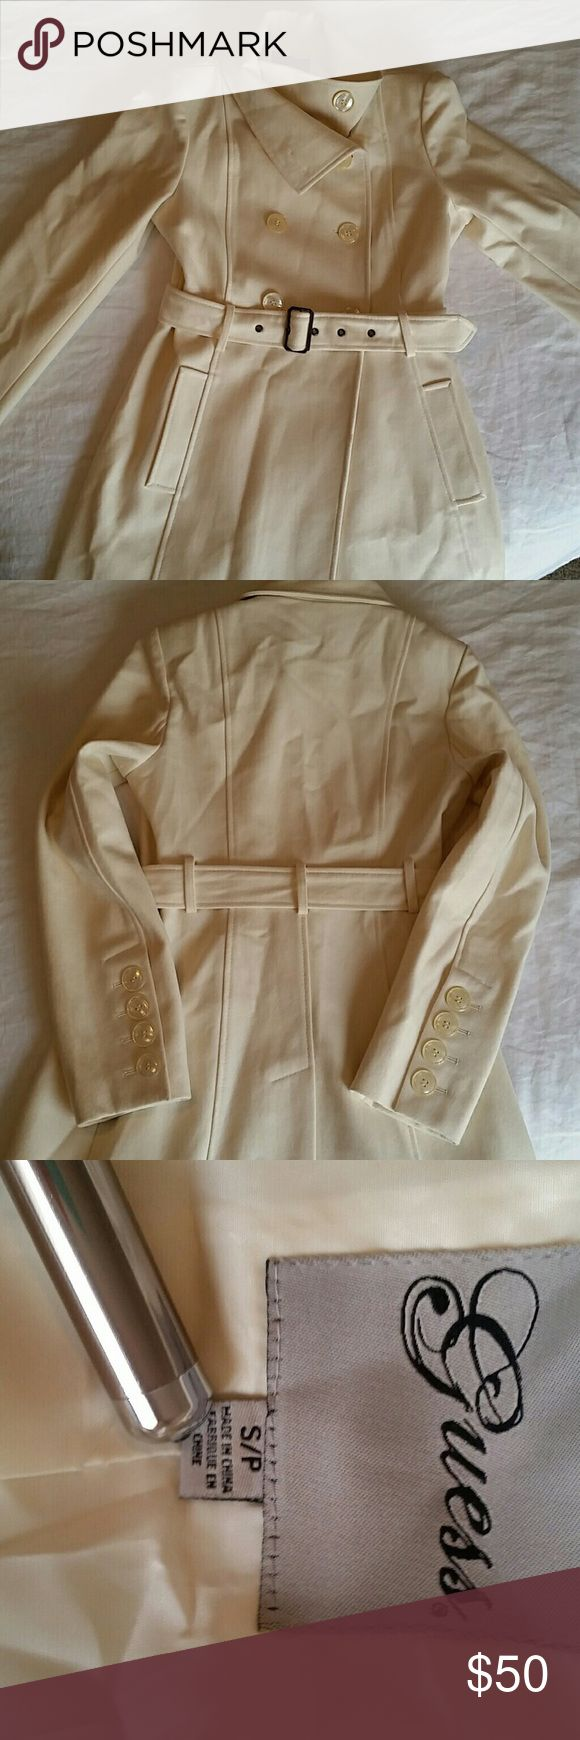 """Beautiful Ivory Guess Trench Coat Guess Ivory Double Breasted Trench Coat  Gorgeous ivory Guess coat! I only wore twice & due to mild FL winters I need to part with it. Flaws: There're some marks & spots; needs to be dry cleaned. IDK what the marks & spots are so not sure if they'll come out or not with a cleaning. They're small & not very noticeable. Last pic shows a small spot where it's piling as I attempted to get a spot out. Price reflects condition. Meas. Approx. 17"""" armpit to armpit…"""